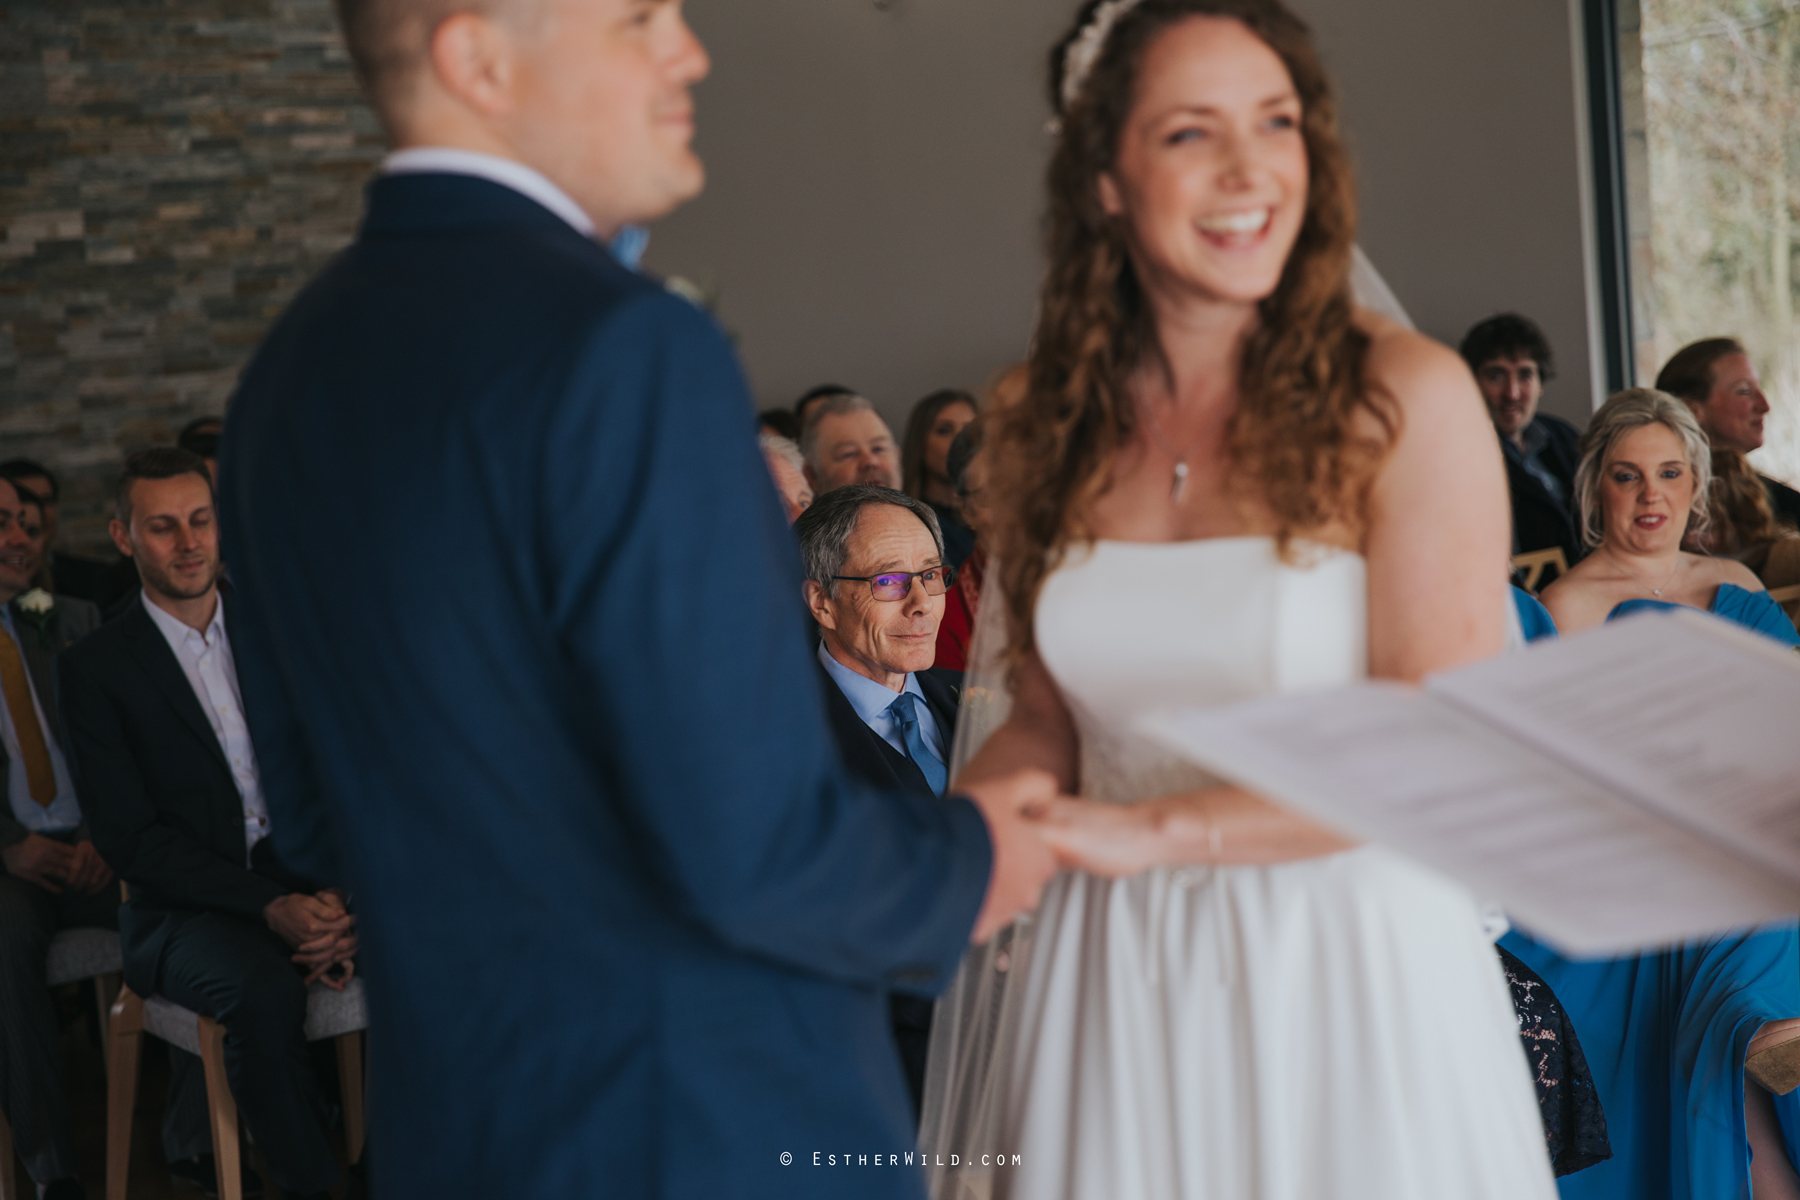 The_BoatHouse_Wedding_Venue_Ormesby_Norfolk_Broads_Boat_Wedding_Photography_Esther_Wild_Photographer_IMG_1101.jpg